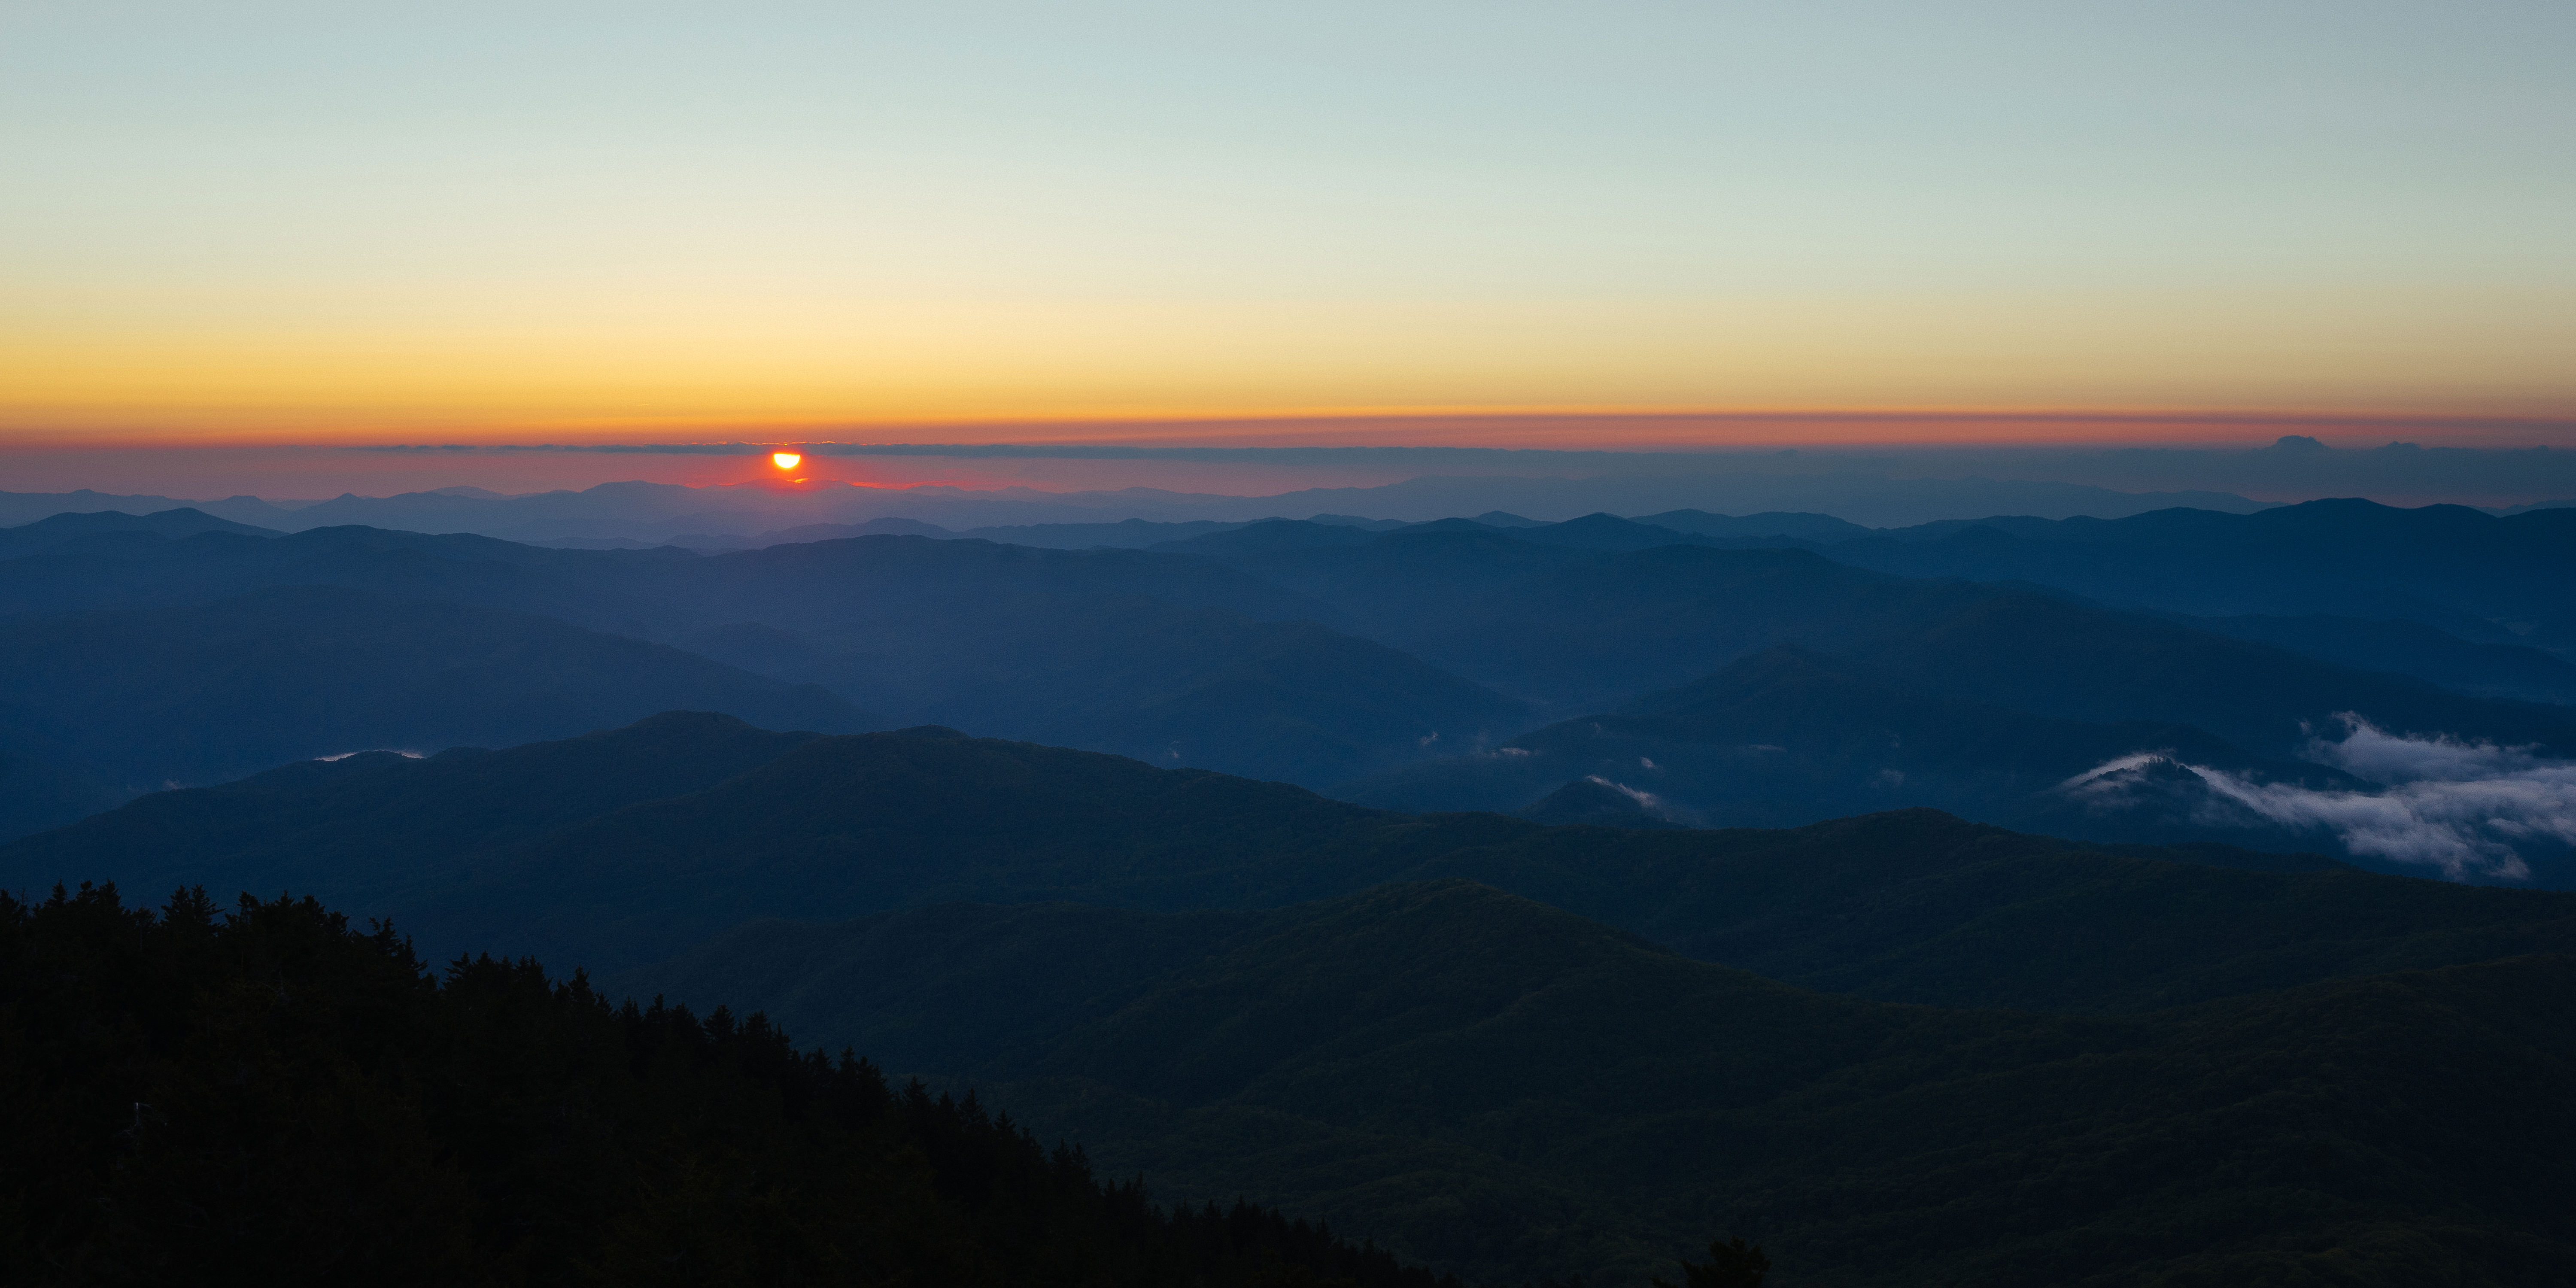 Huckberry great smoky mountain national park insider's guide kyle frost sterling foretower closing image